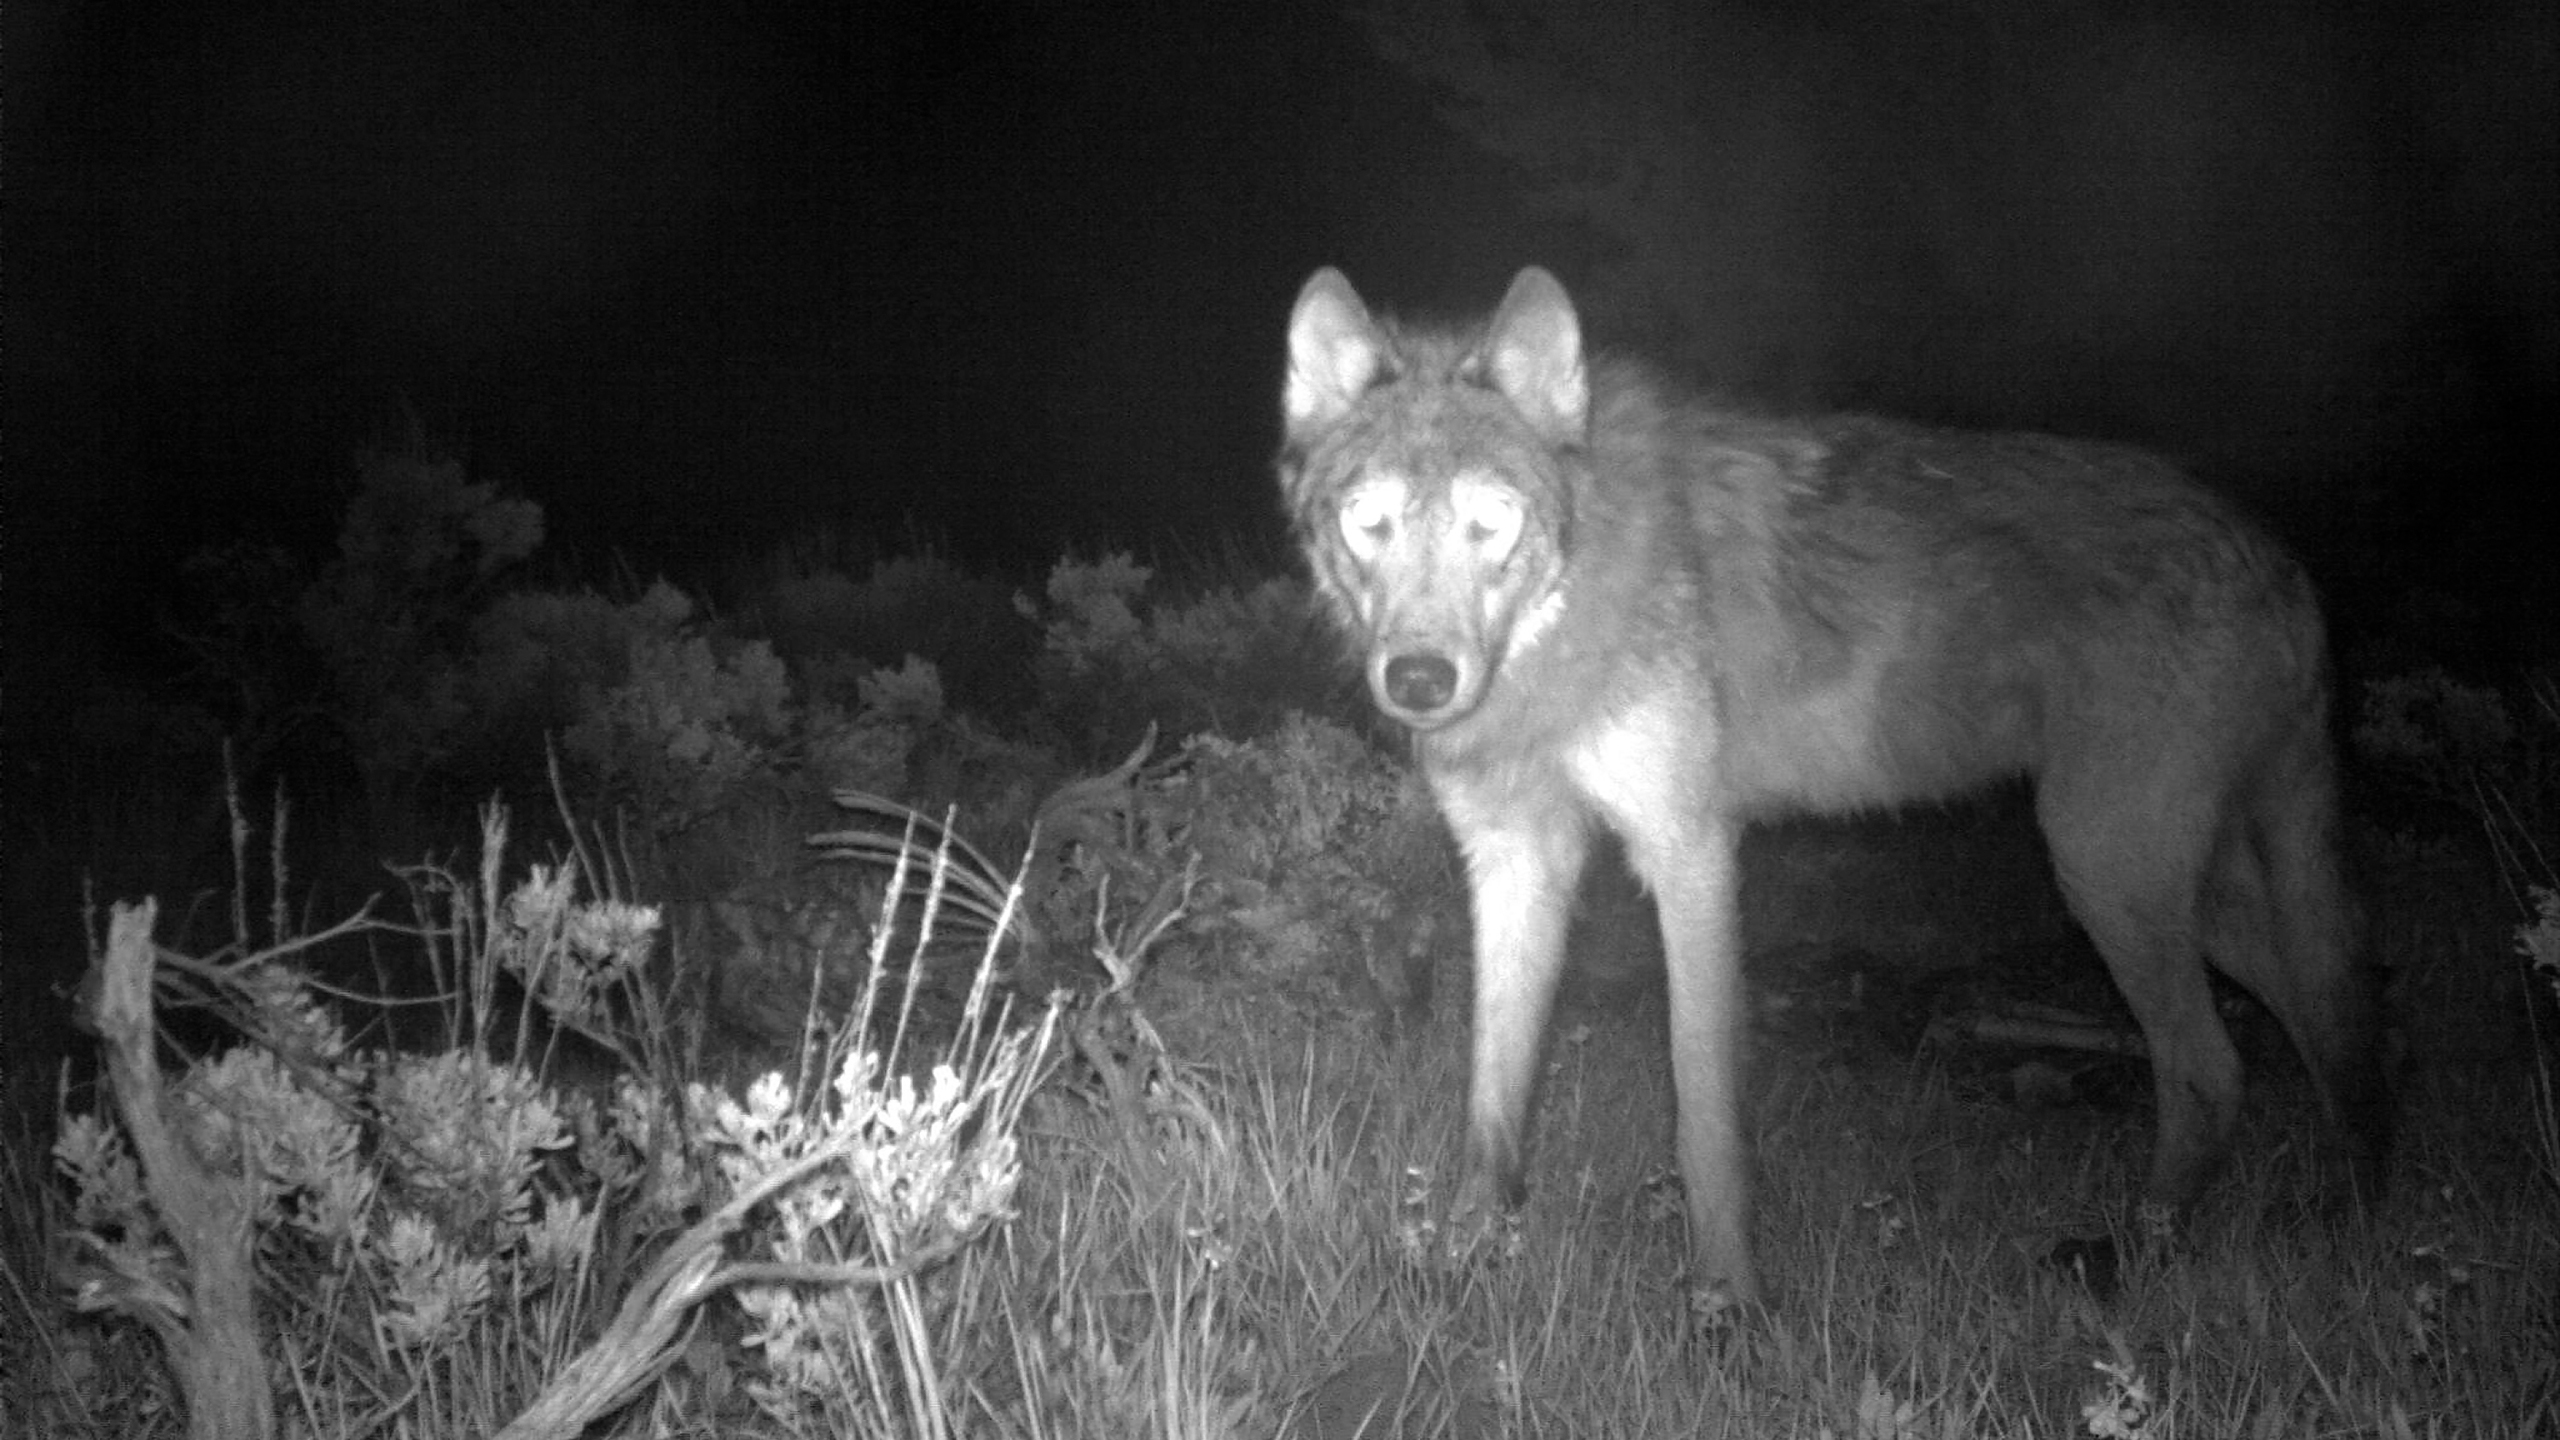 This June 3, 2020, file image released by Colorado Parks and Wildlife shows a wolf on a state game camera in Moffat County, Colo. Colorado wildlife officials say the first gray wolf pups since the 1940s have been spotted in the state. Gov. Jared Polis' office said in a news release Wednesday, June 9, 2021, that a state biologist and district wildlife manager each spotted the litter of at least three wolf pups over the weekend. (Colorado Parks and Wildlife via AP, File)